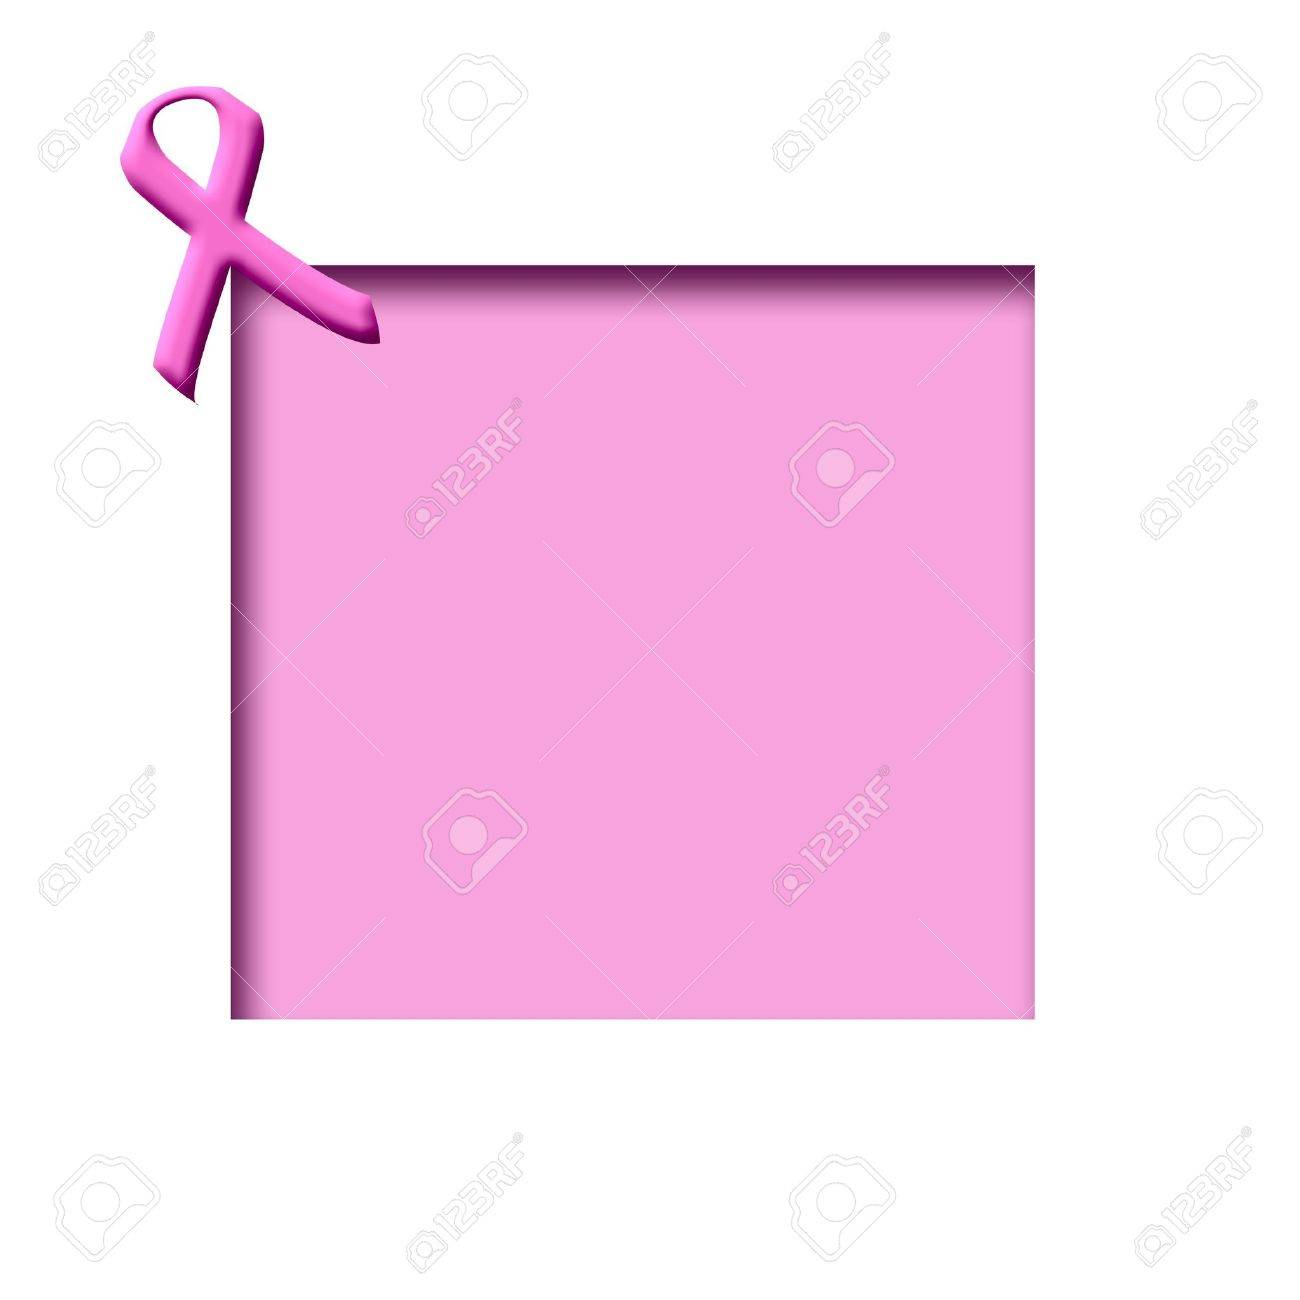 1300x1300 Breast Cancer Awareness Pink Ribbon On Cutout Frame Stock Photo